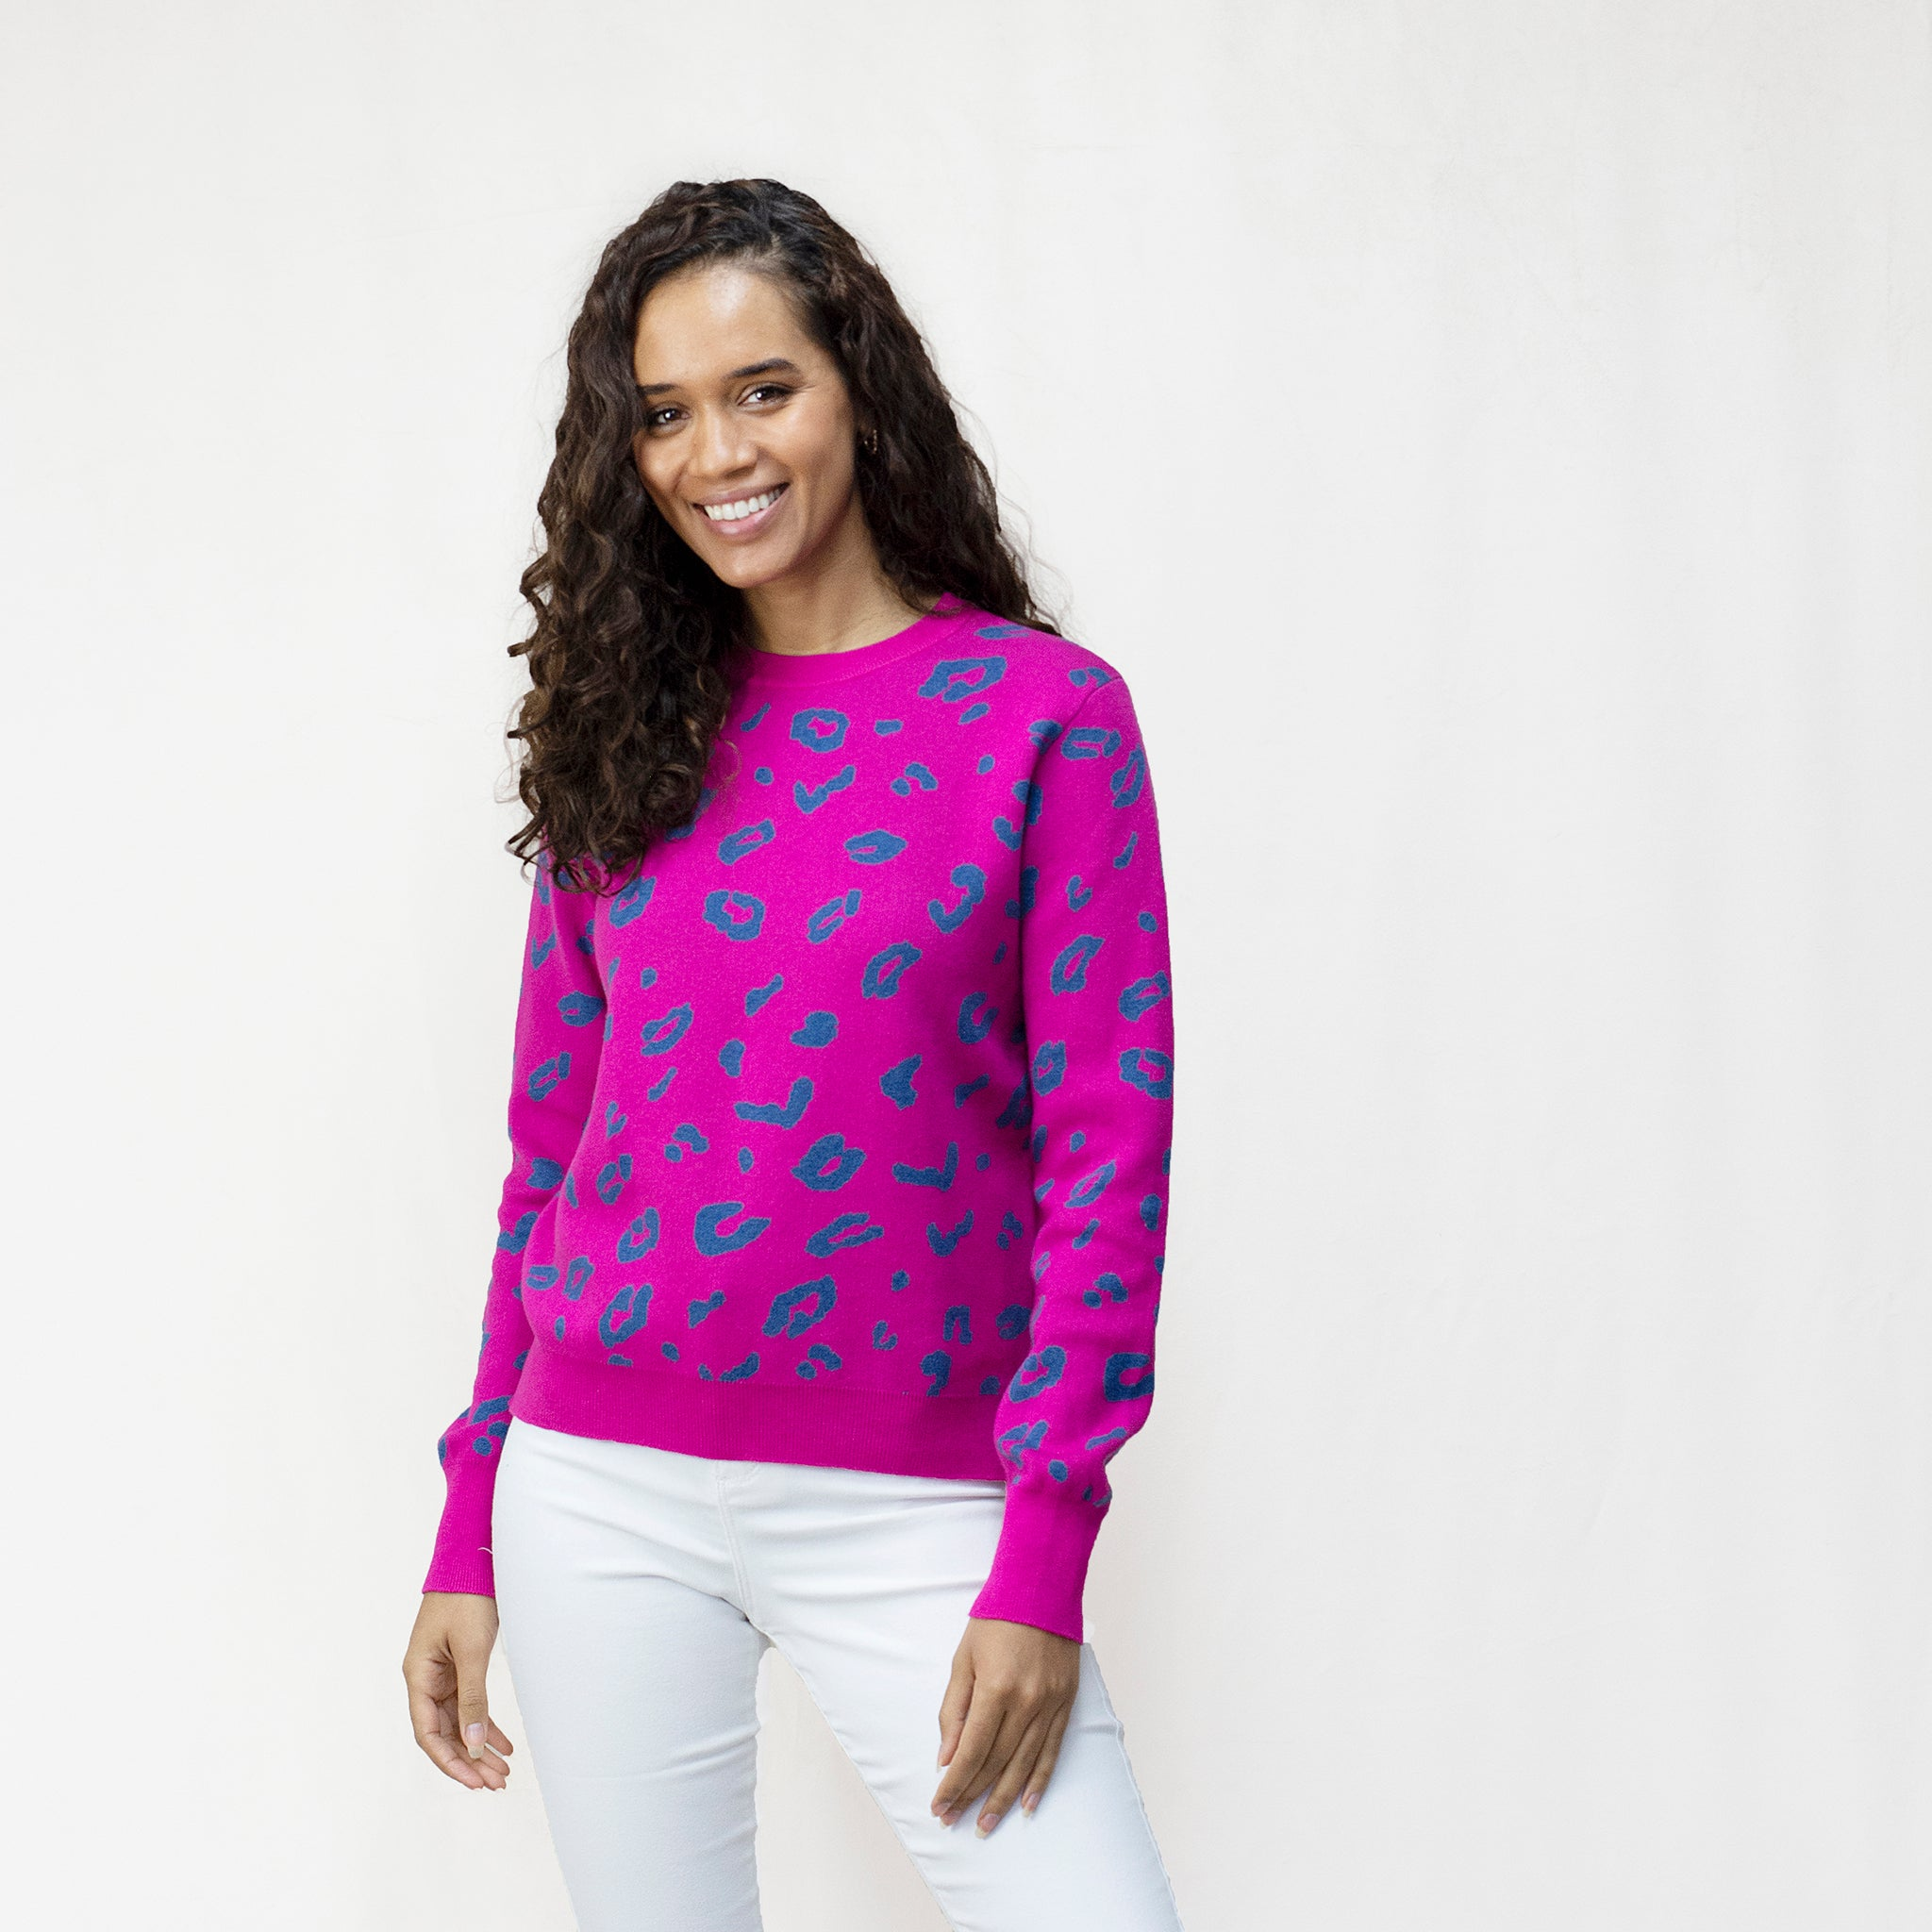 Leopard Print Women's Crew Neck Jumper